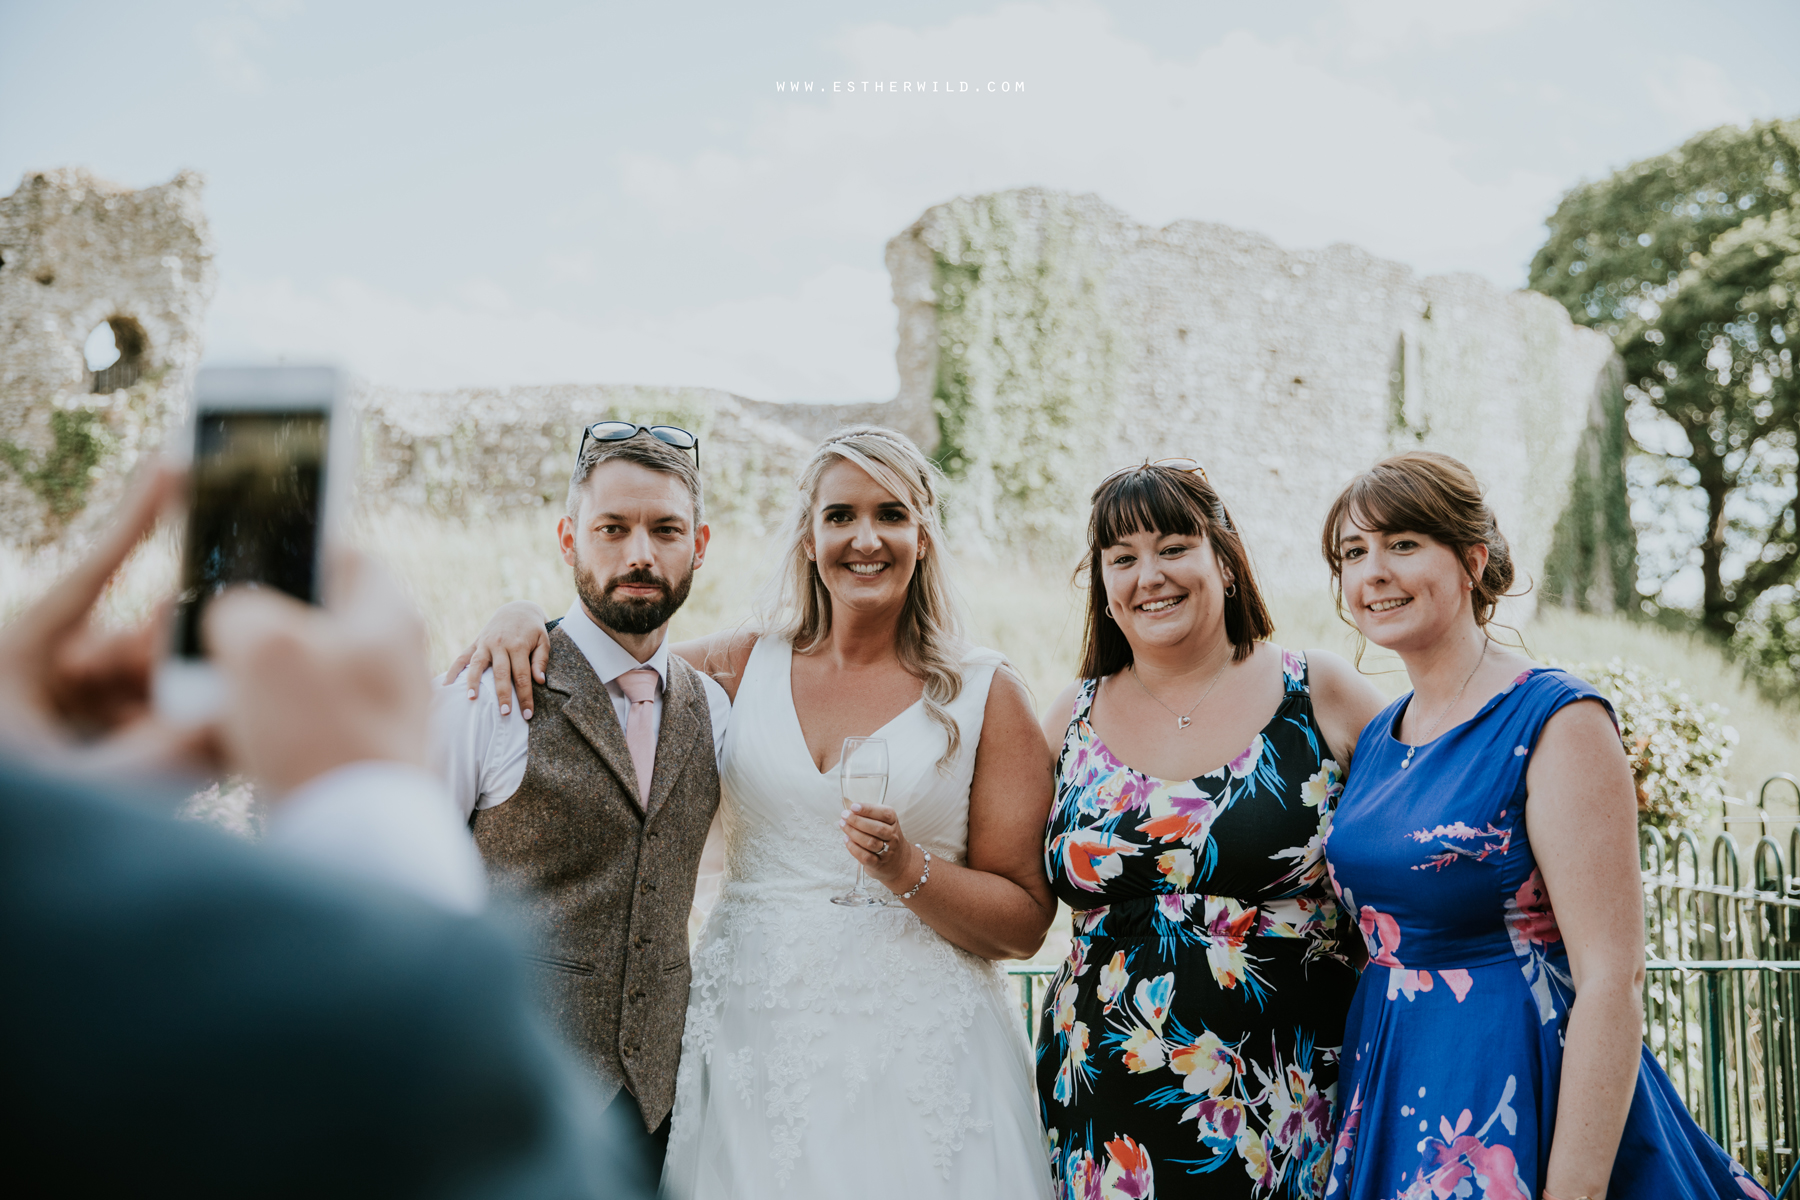 Swaffham_Wedding_Castle_Acre_Norfolk_Esther_Wild_Photographer_Wedding_Photography_3R8A1532.jpg